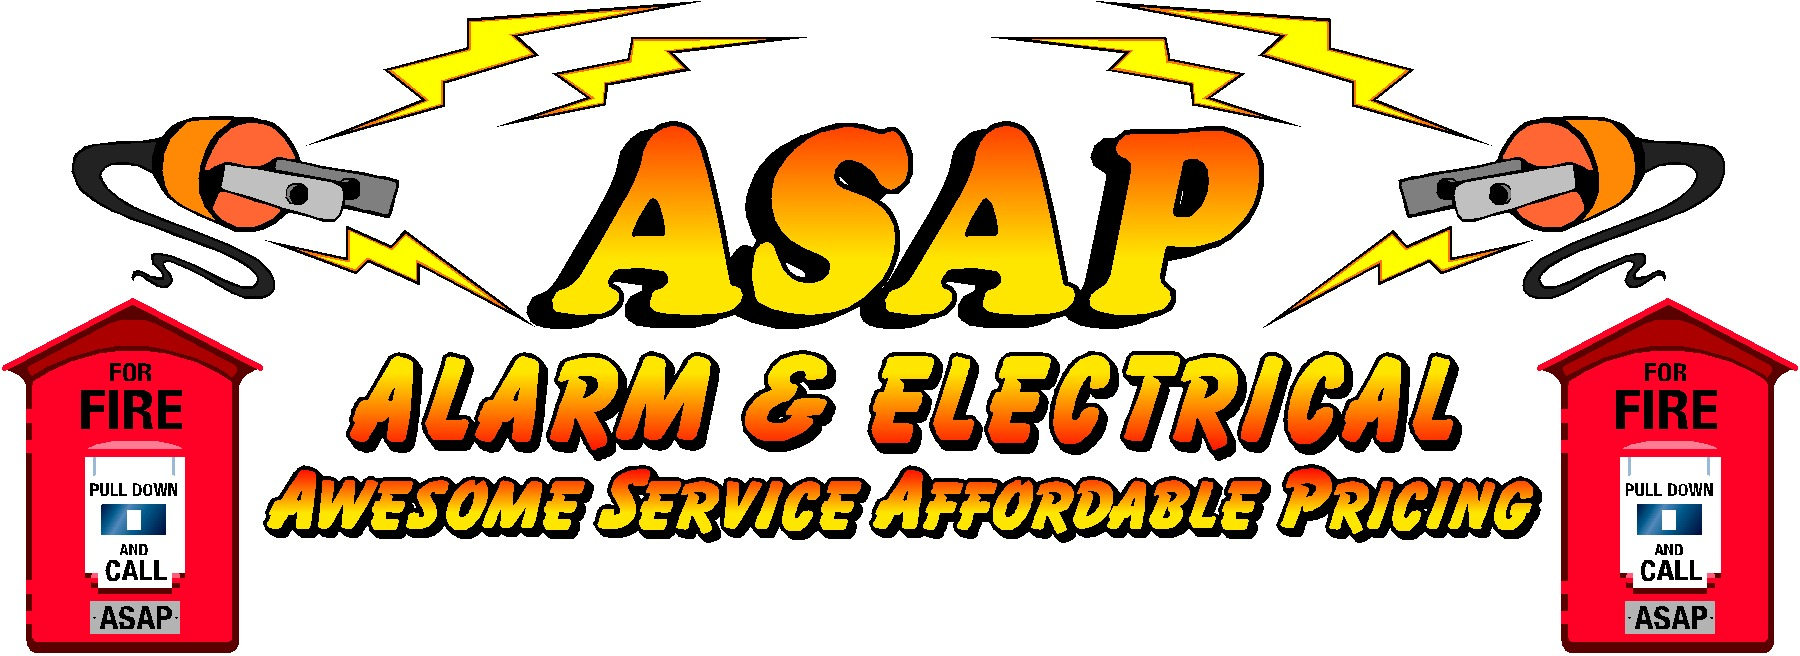 ASAP Alarm & Electrical